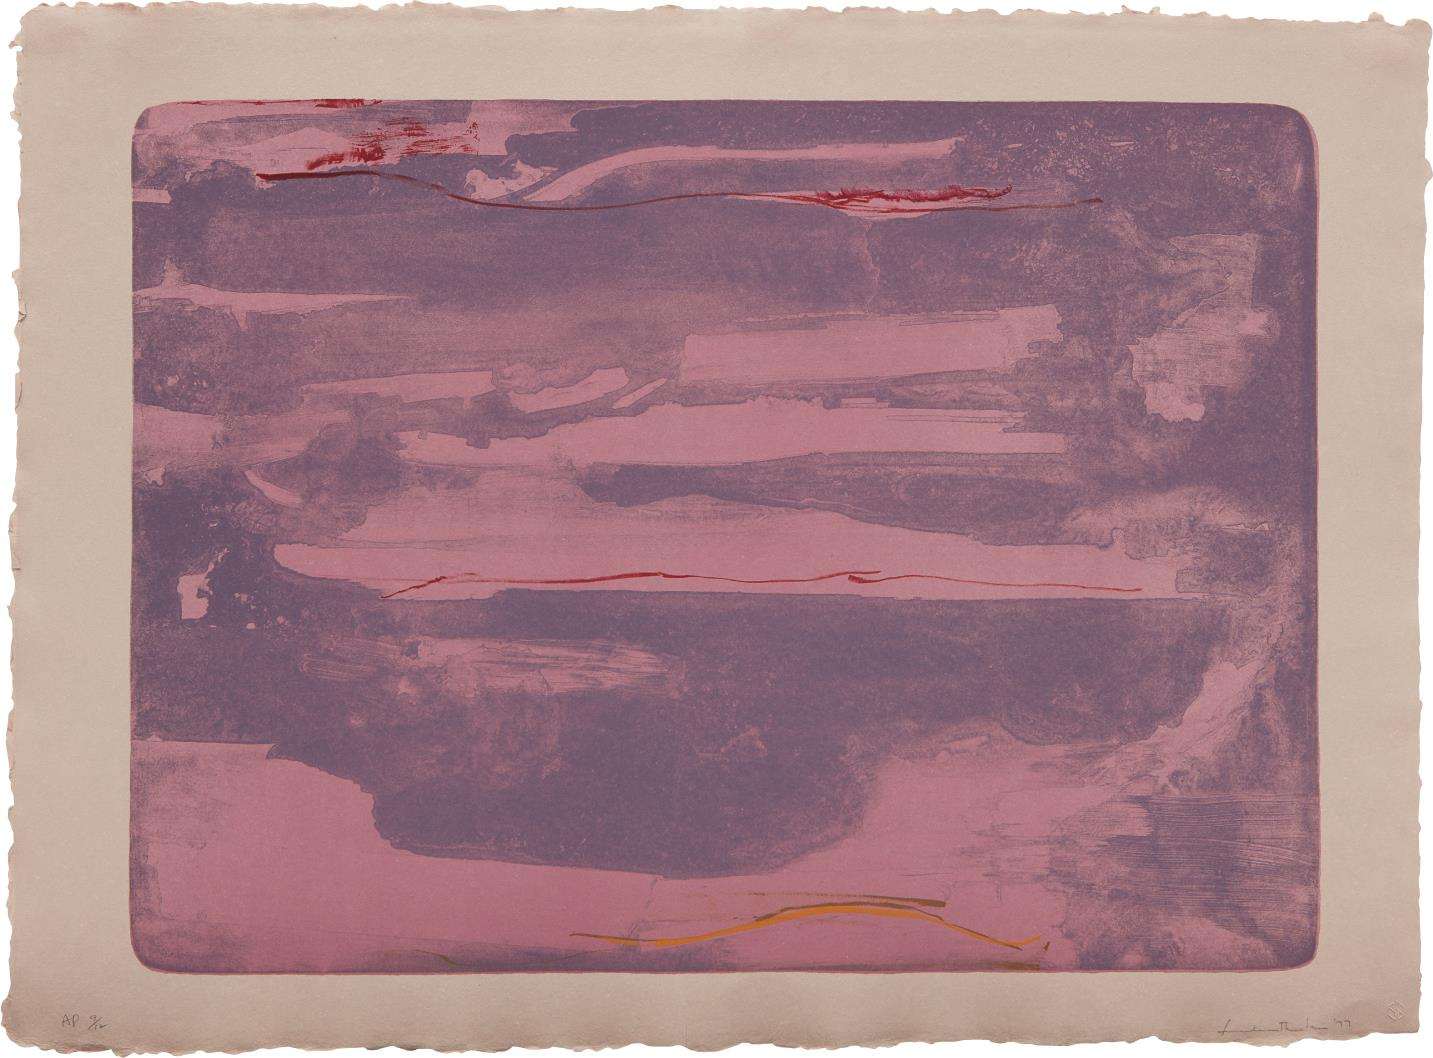 Helen Frankenthaler-Dream Walk-1977